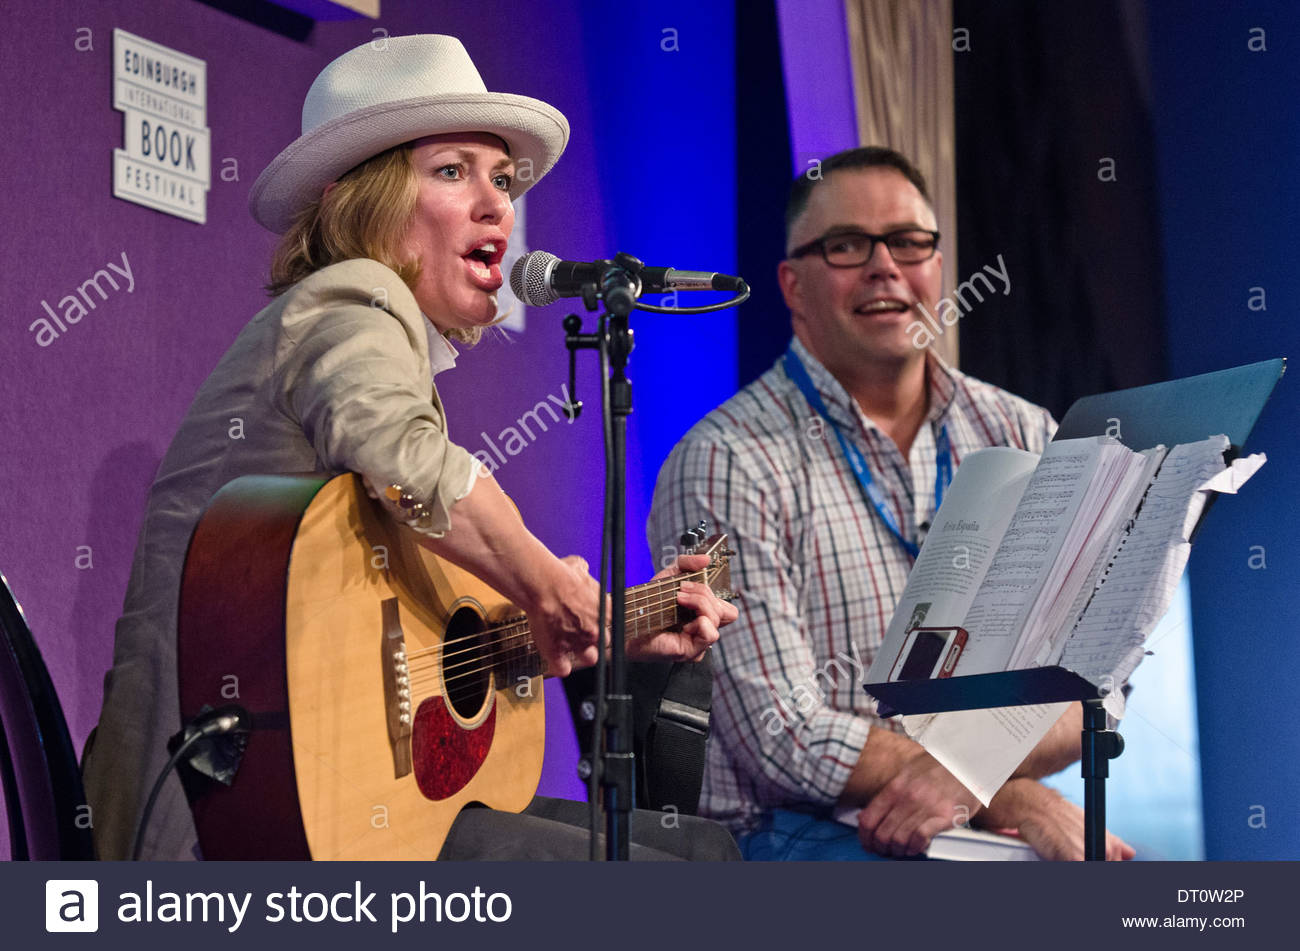 British singer, musician, and book author Cerys Matthews, ex-singer of Catatonia, at the Edinburgh International Book Festival - Stock Image